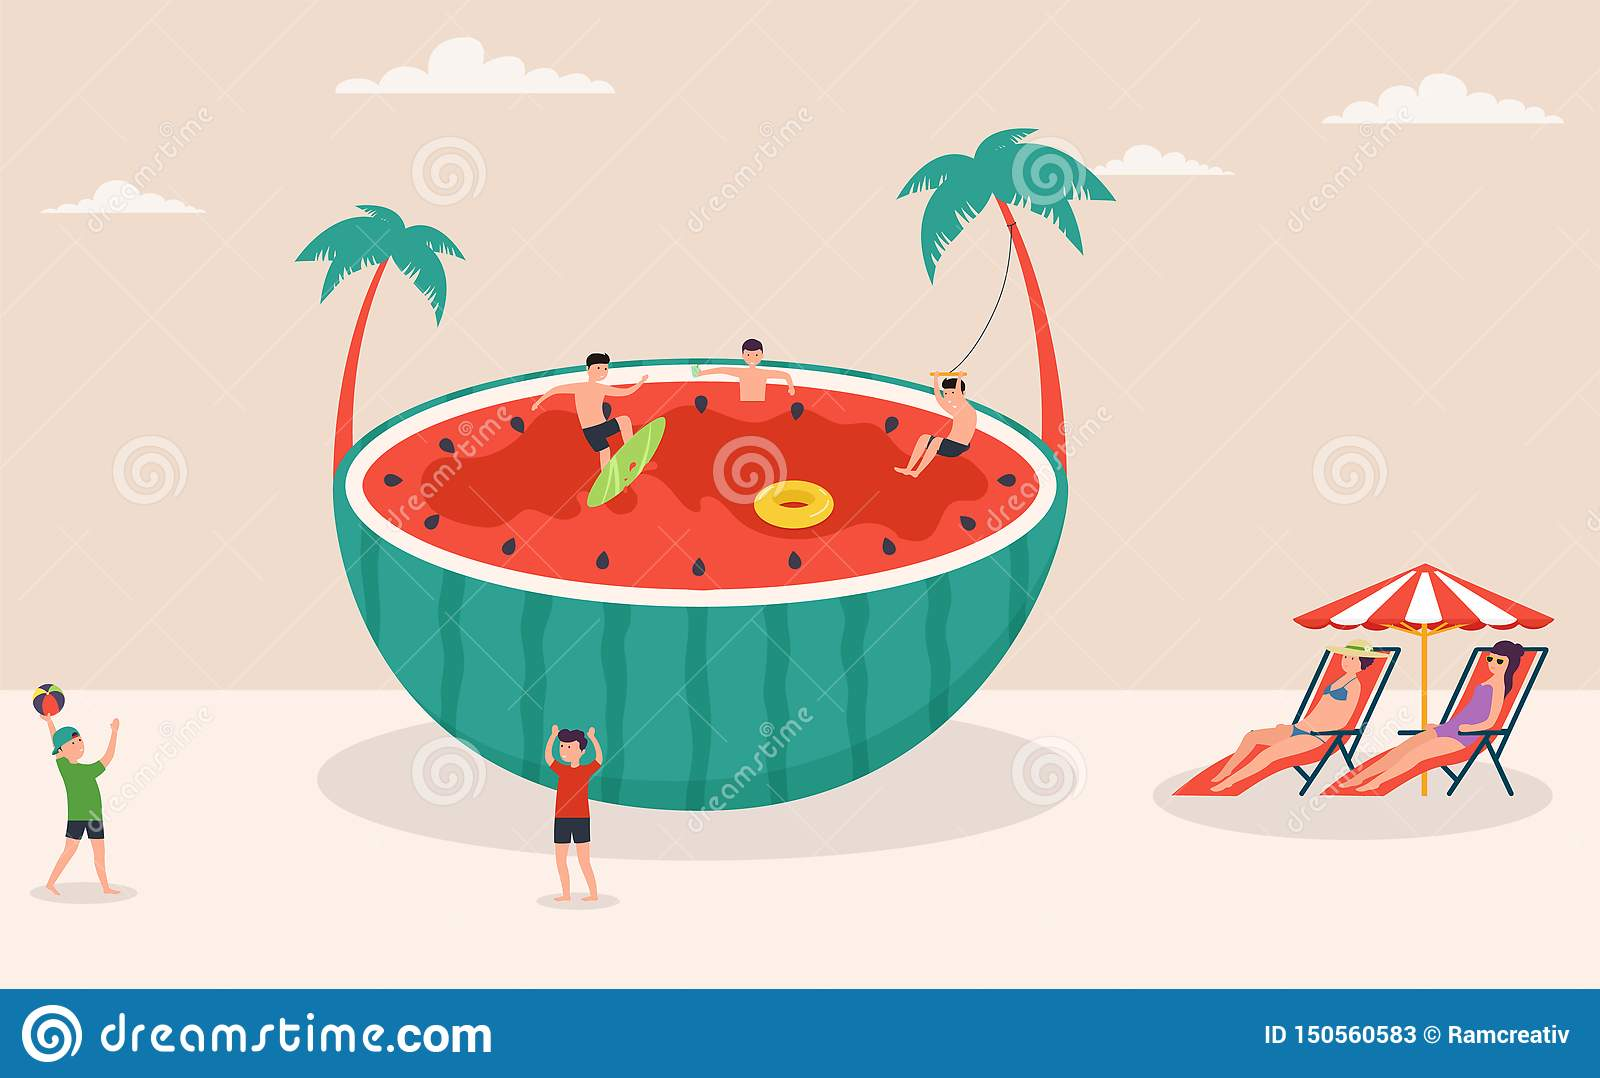 Summertime holiday scene, huge watermelon surfing, games in water and on beach, beach volleyball, characters